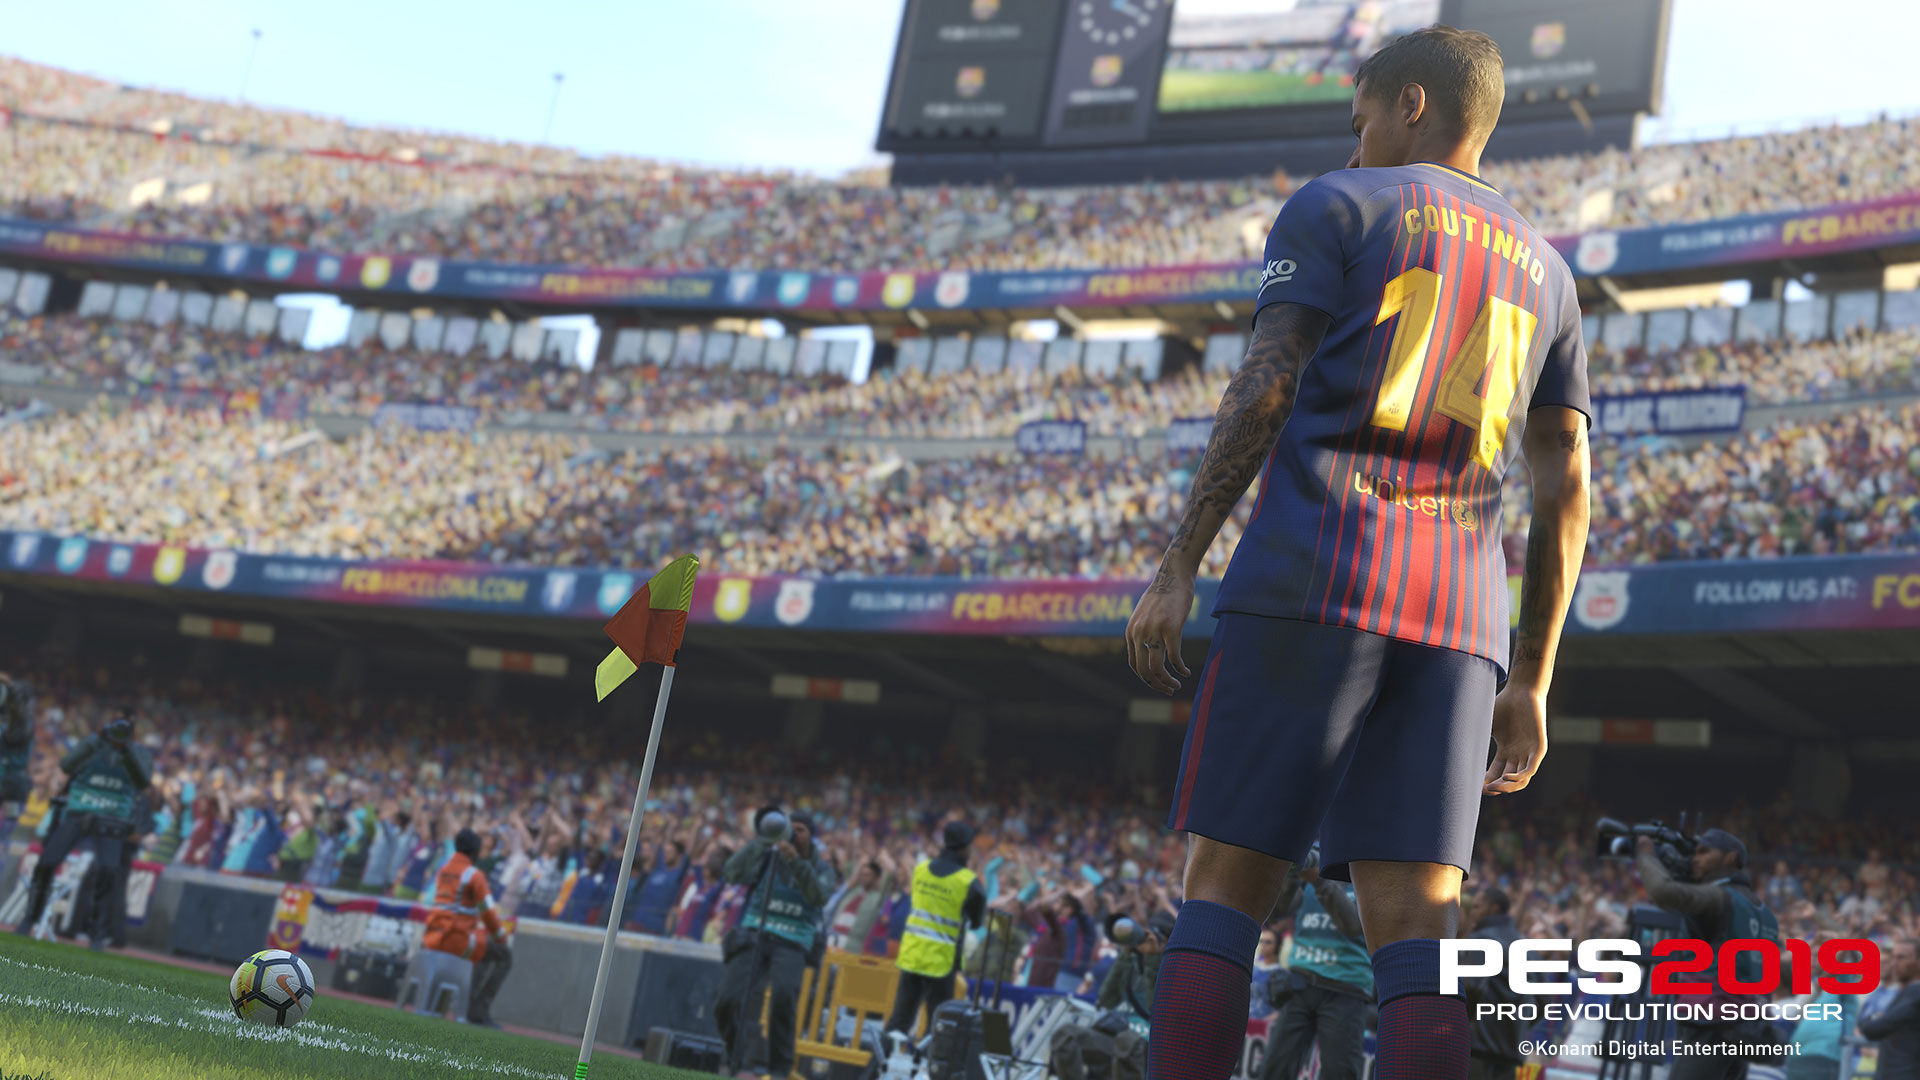 PES 2019 Officially Launches Later This Year